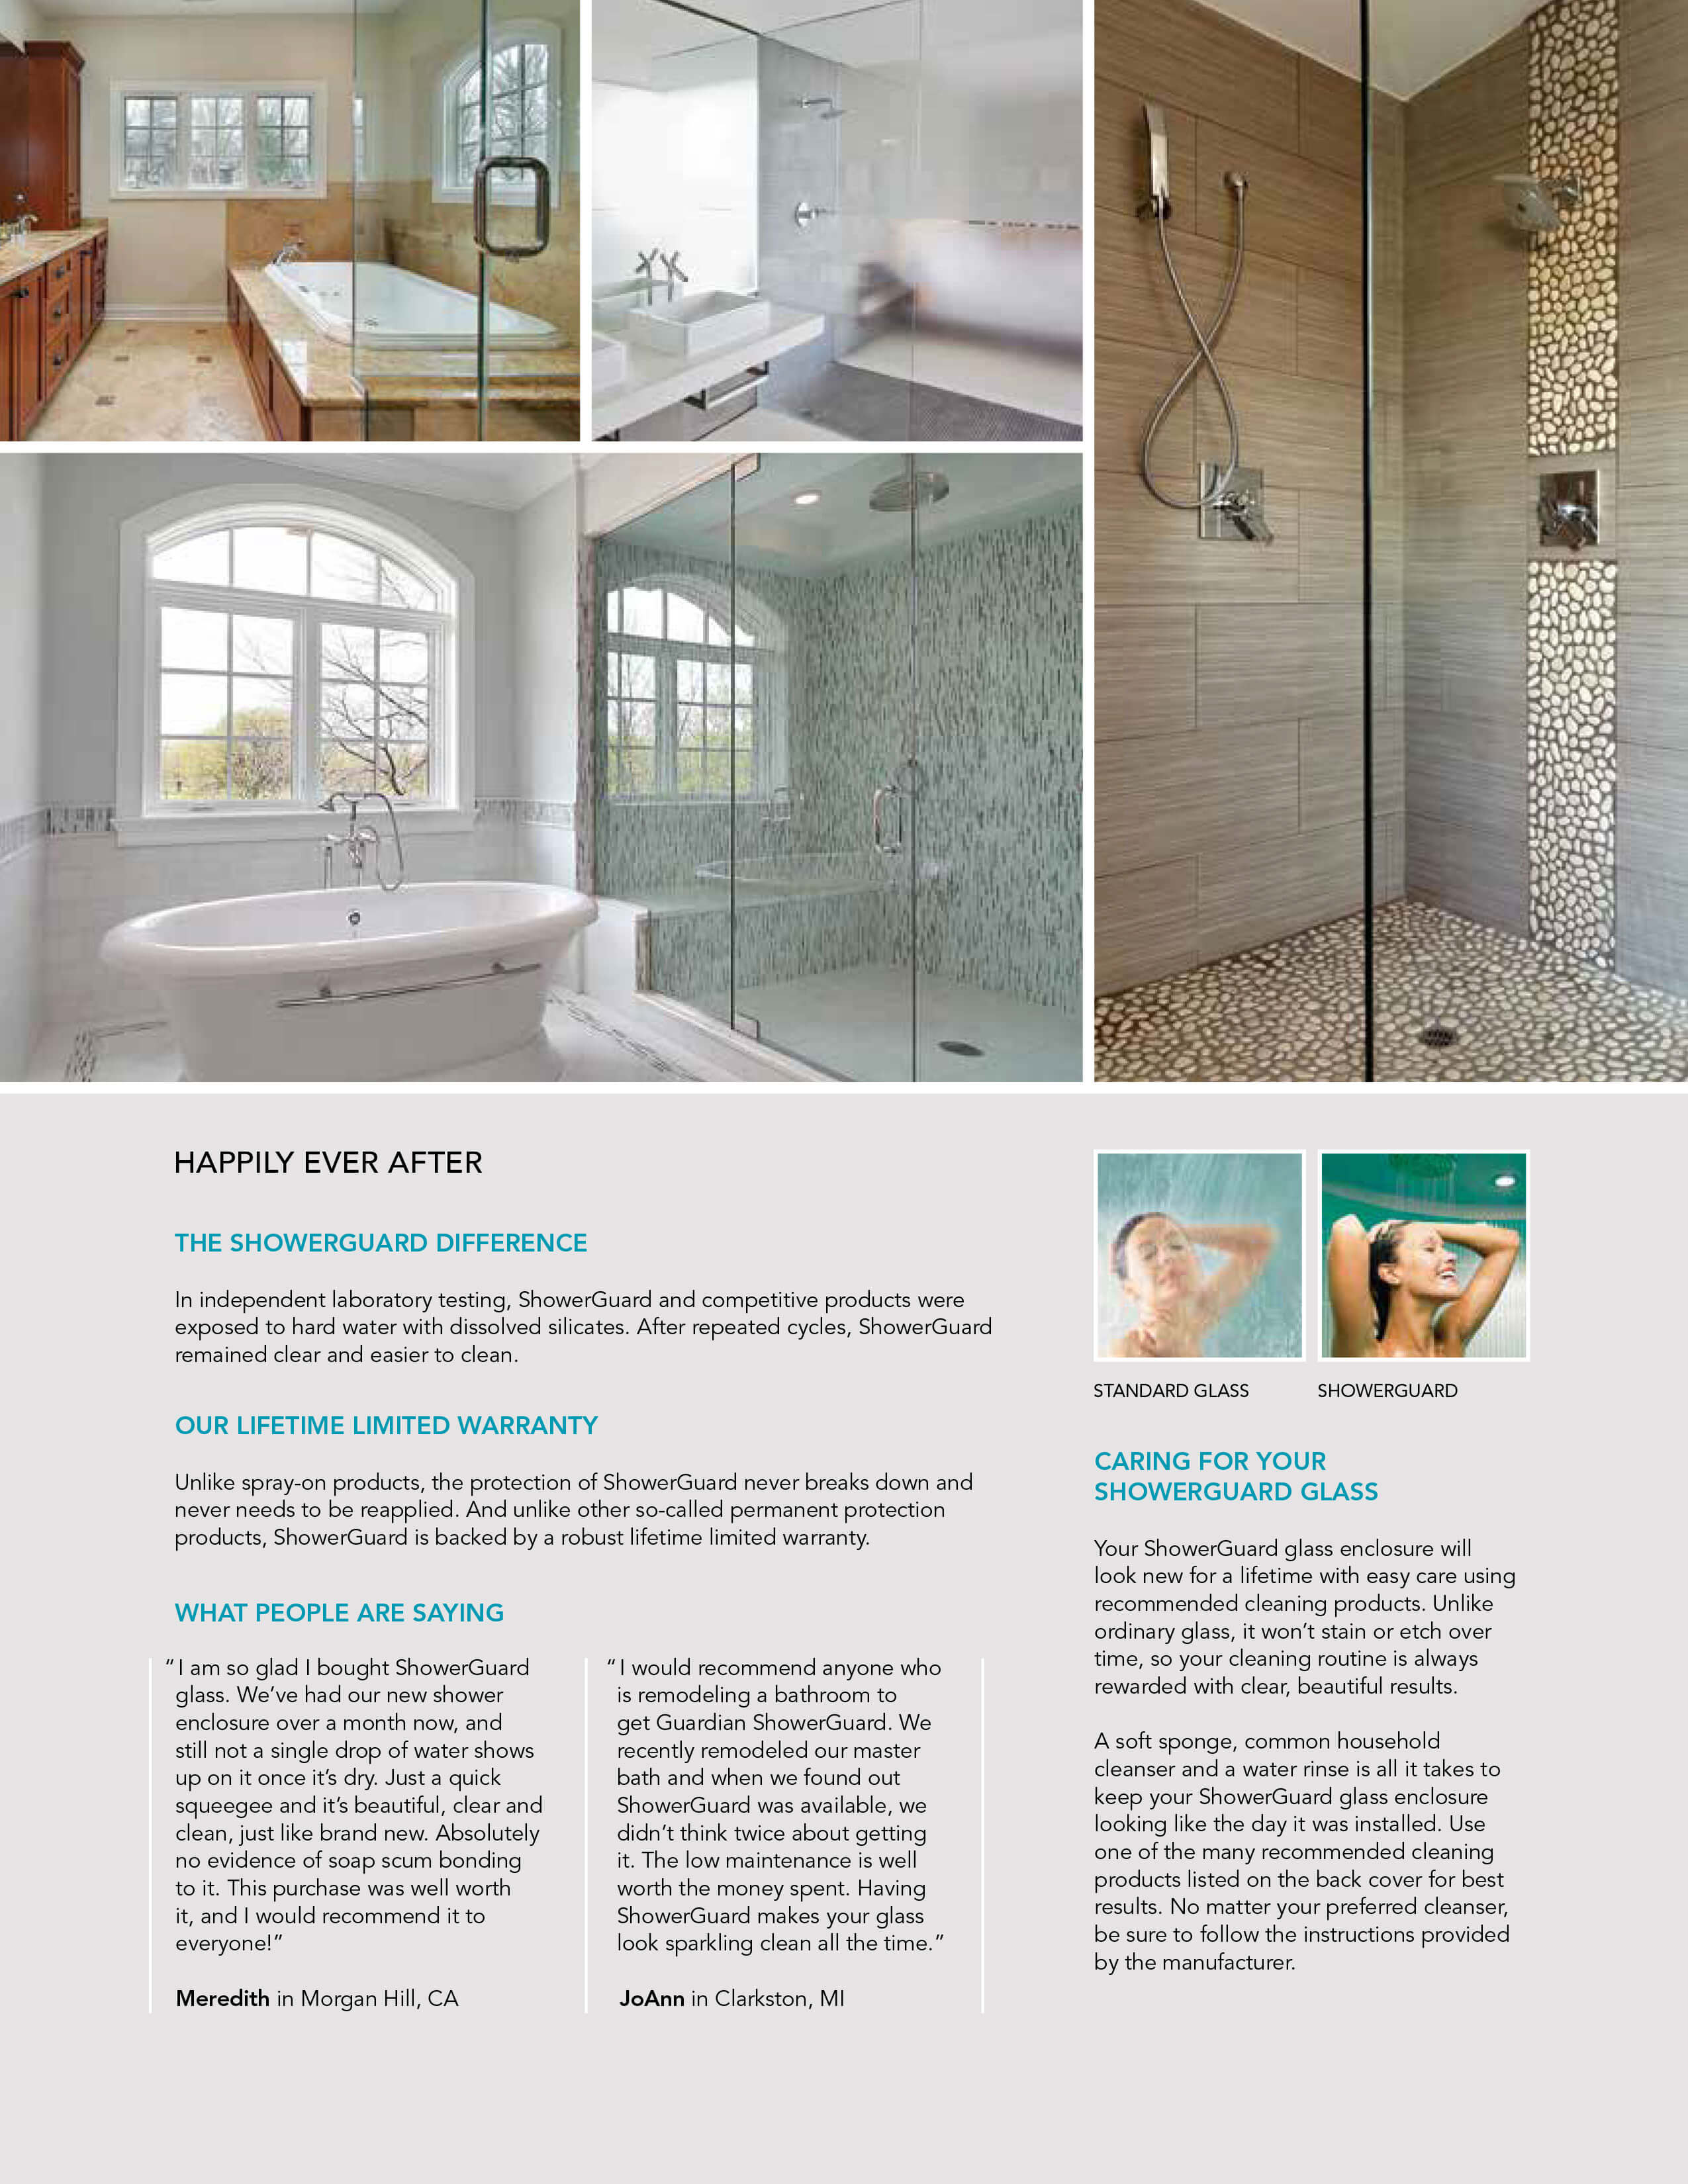 With Just A Minimal Amount Of Cleaning, ShowerGuard Glass Will Stay  Beautiful For Years To Come!